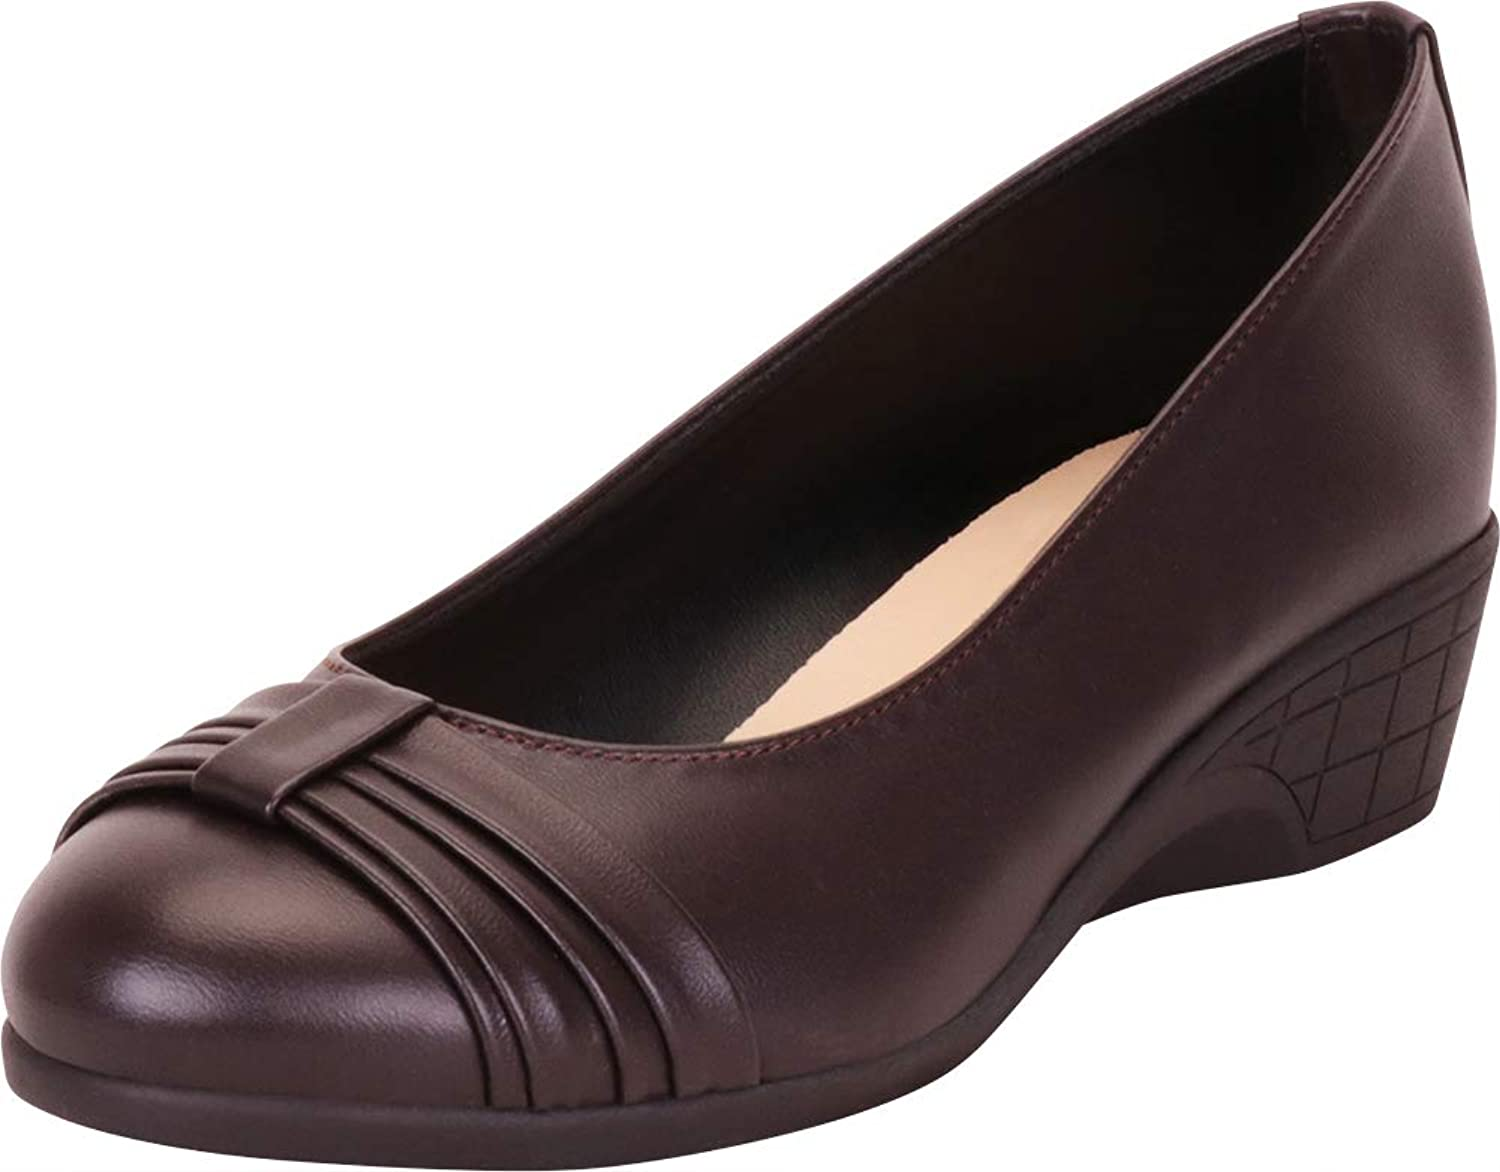 Cambridge Select Women's Round Toe Bow Knot Low Comfort Wedge